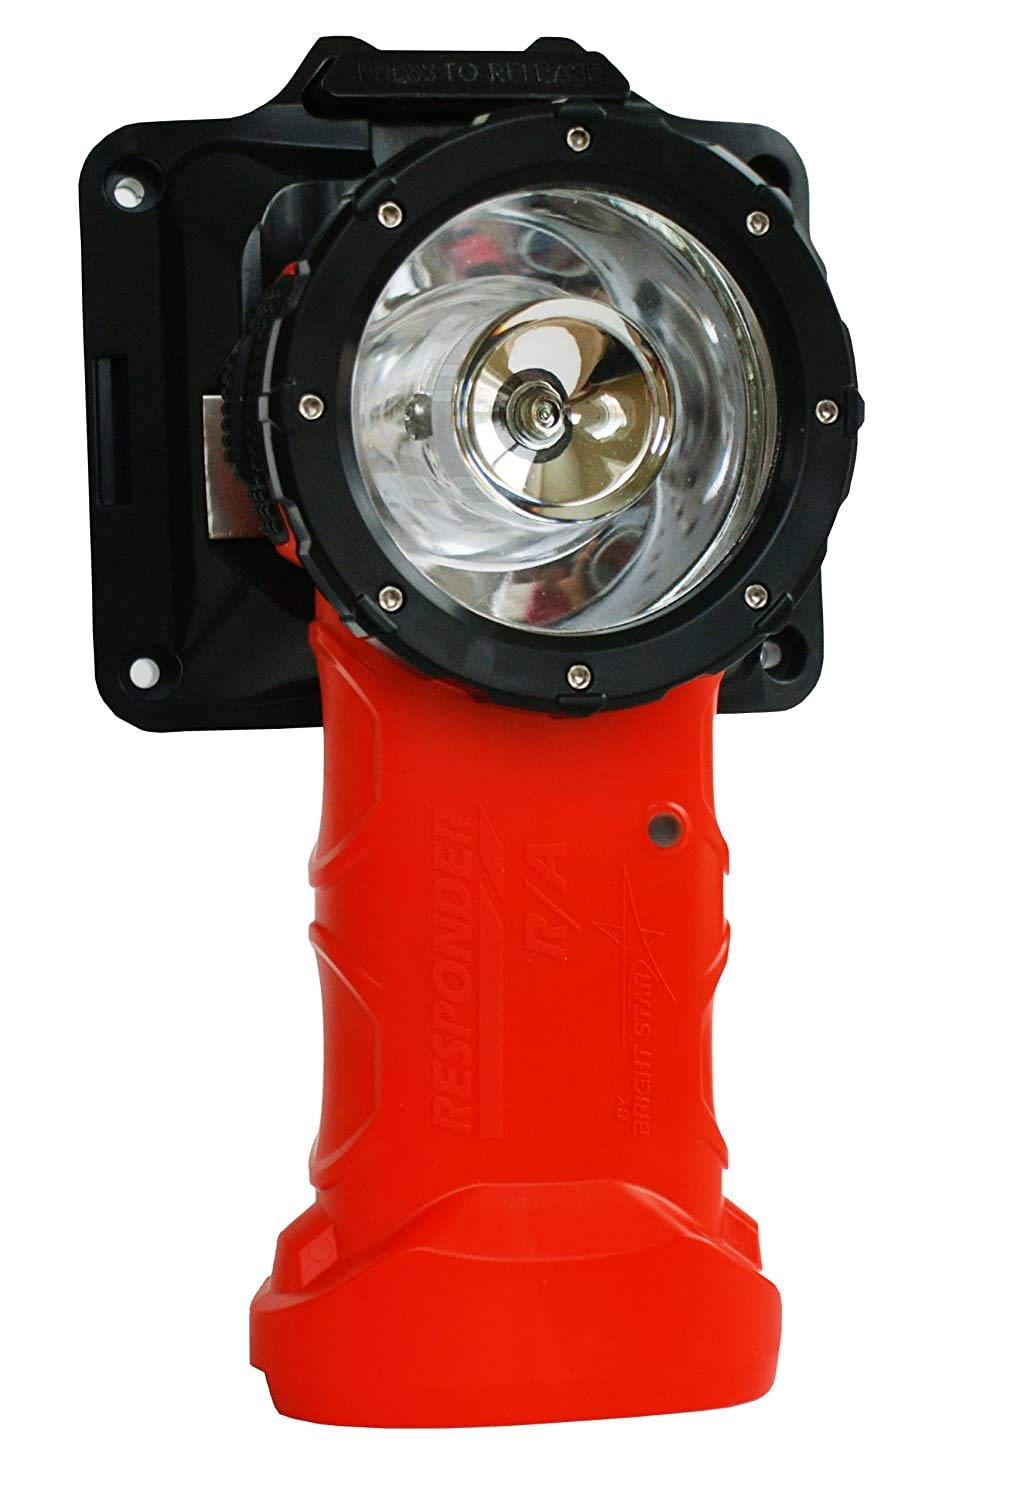 Bright Star Responder Right Angle Flashlight | Rechargeable with European/International Charger | Intrinsically Safe UL Certified, 205 Lumens LED for Fire Rescue, Industrial Use, Emergencies, More